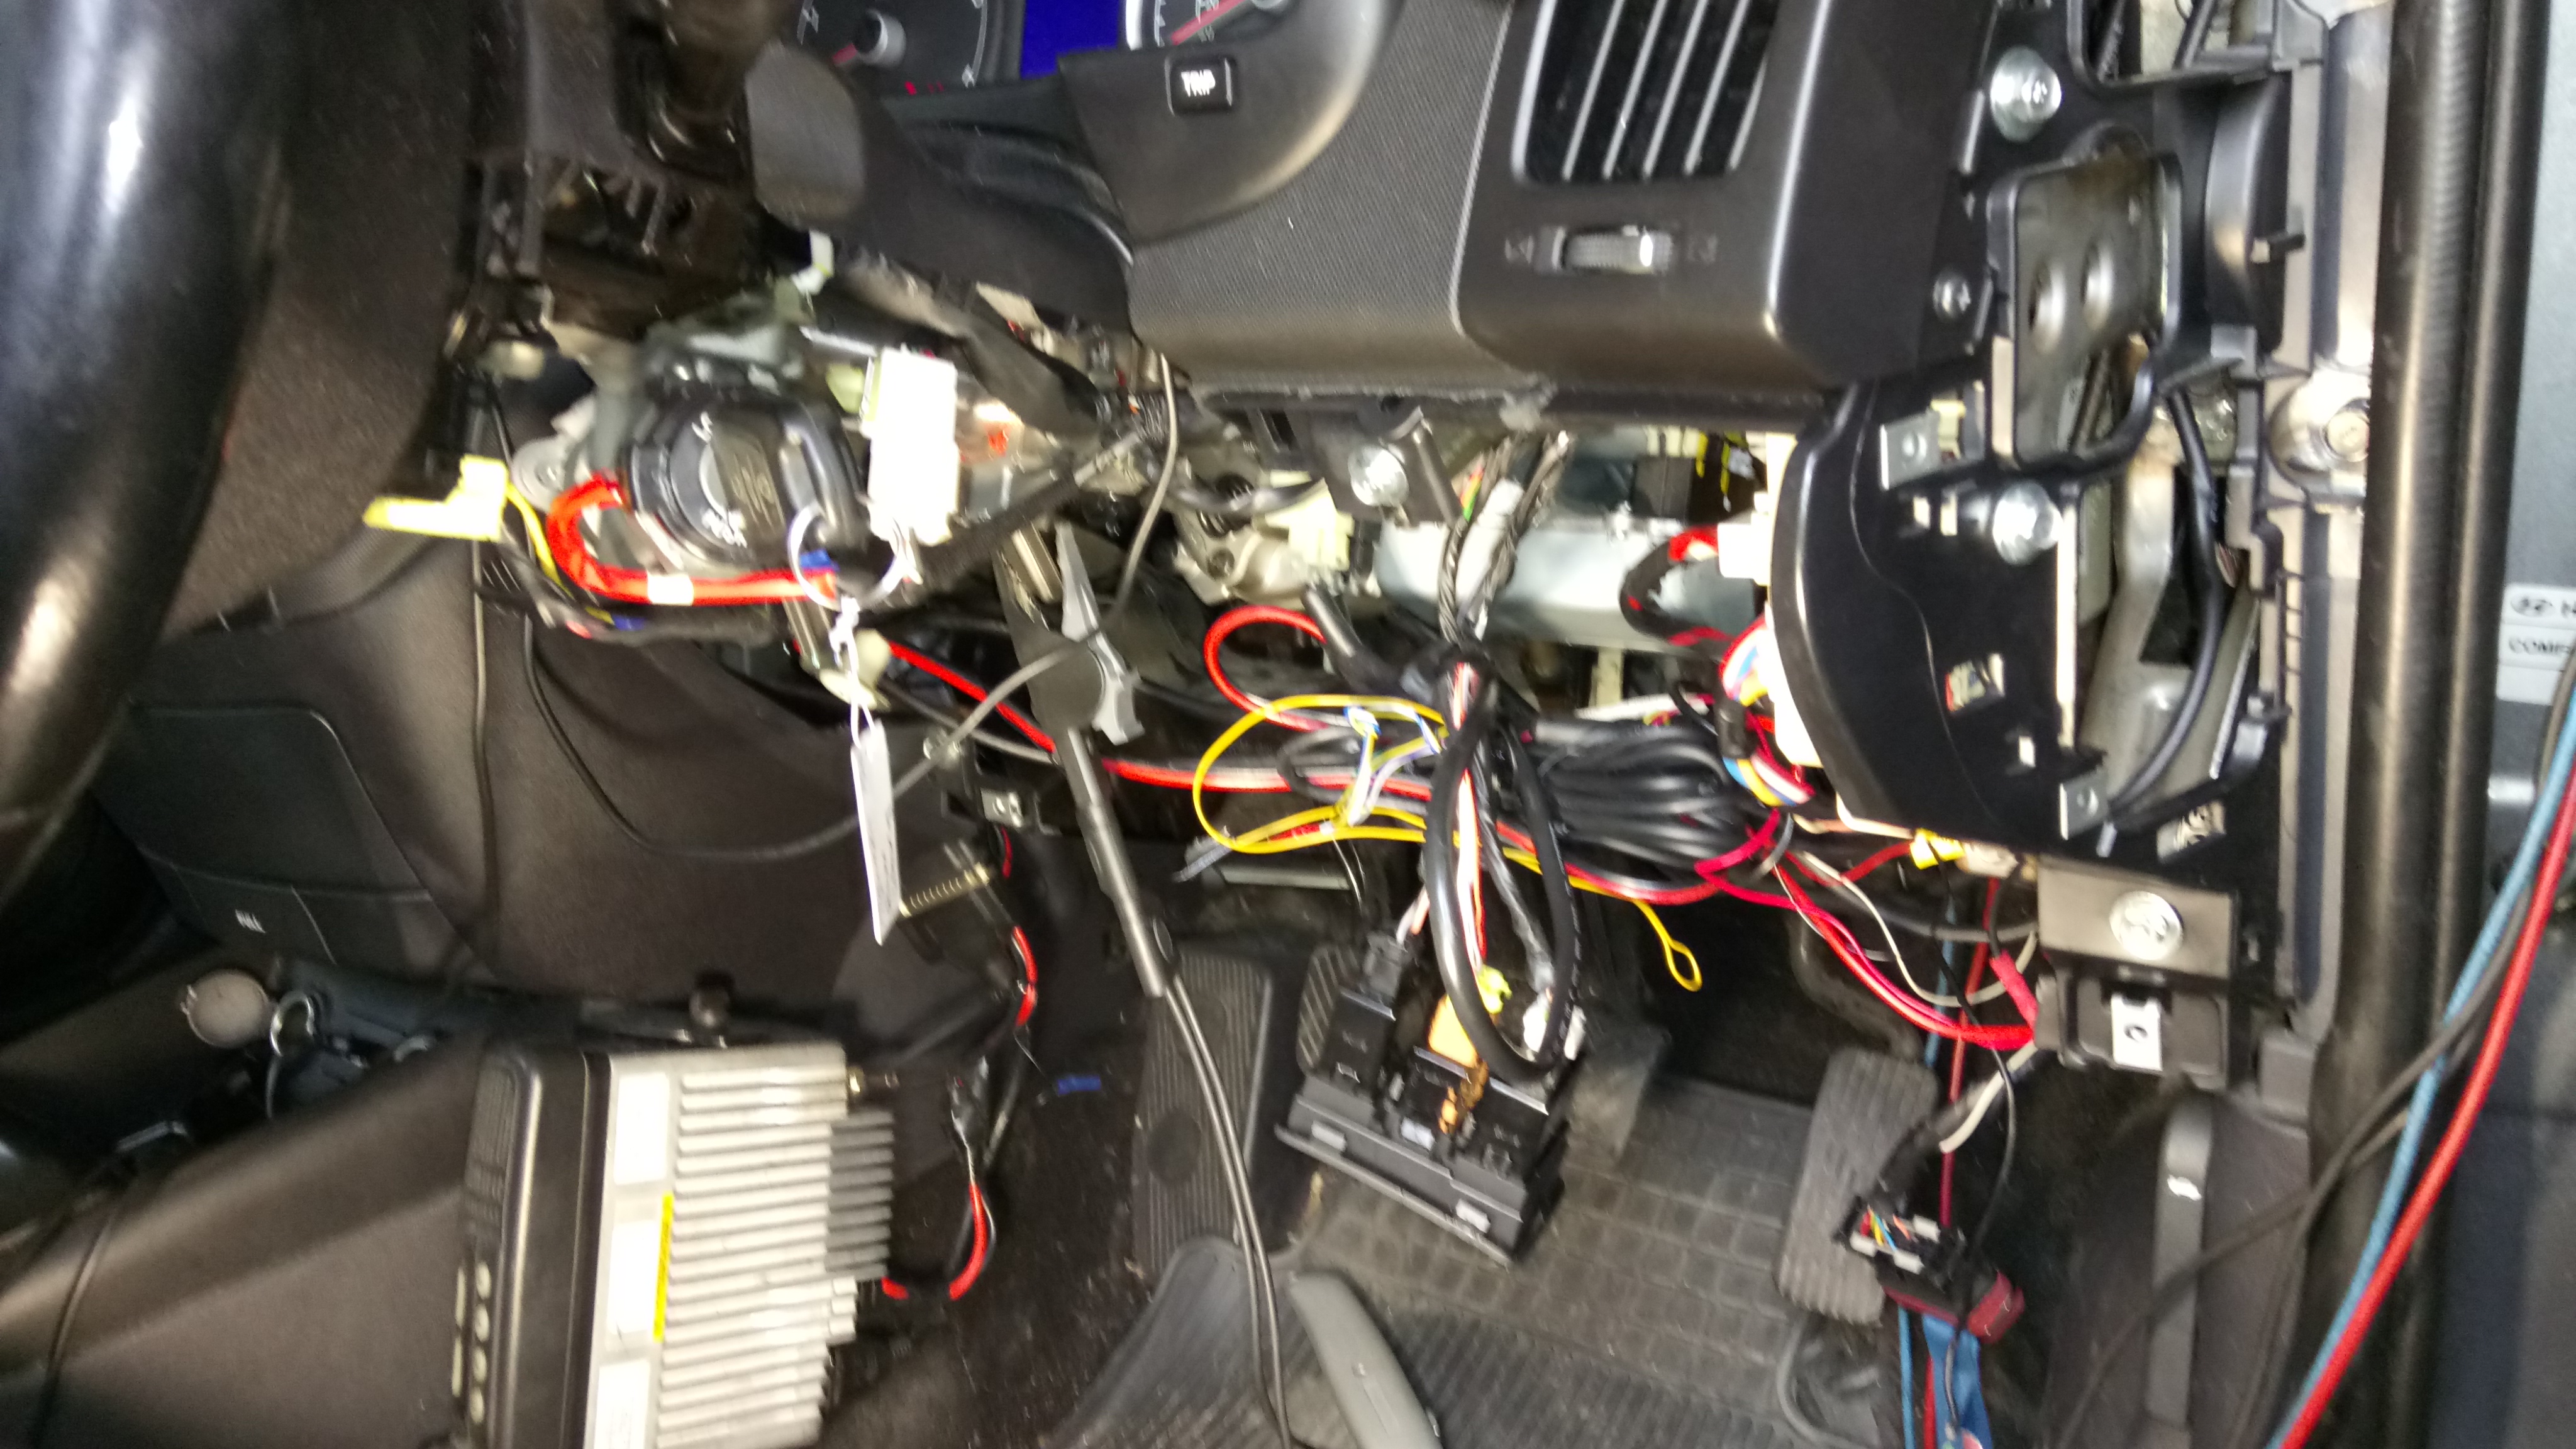 ford f250, ford explorer, gm delco, delco electronics, pontiac grand prix, ford mustang, ford expedition, bmw e36, delco car, on xsara radio wiring diagram